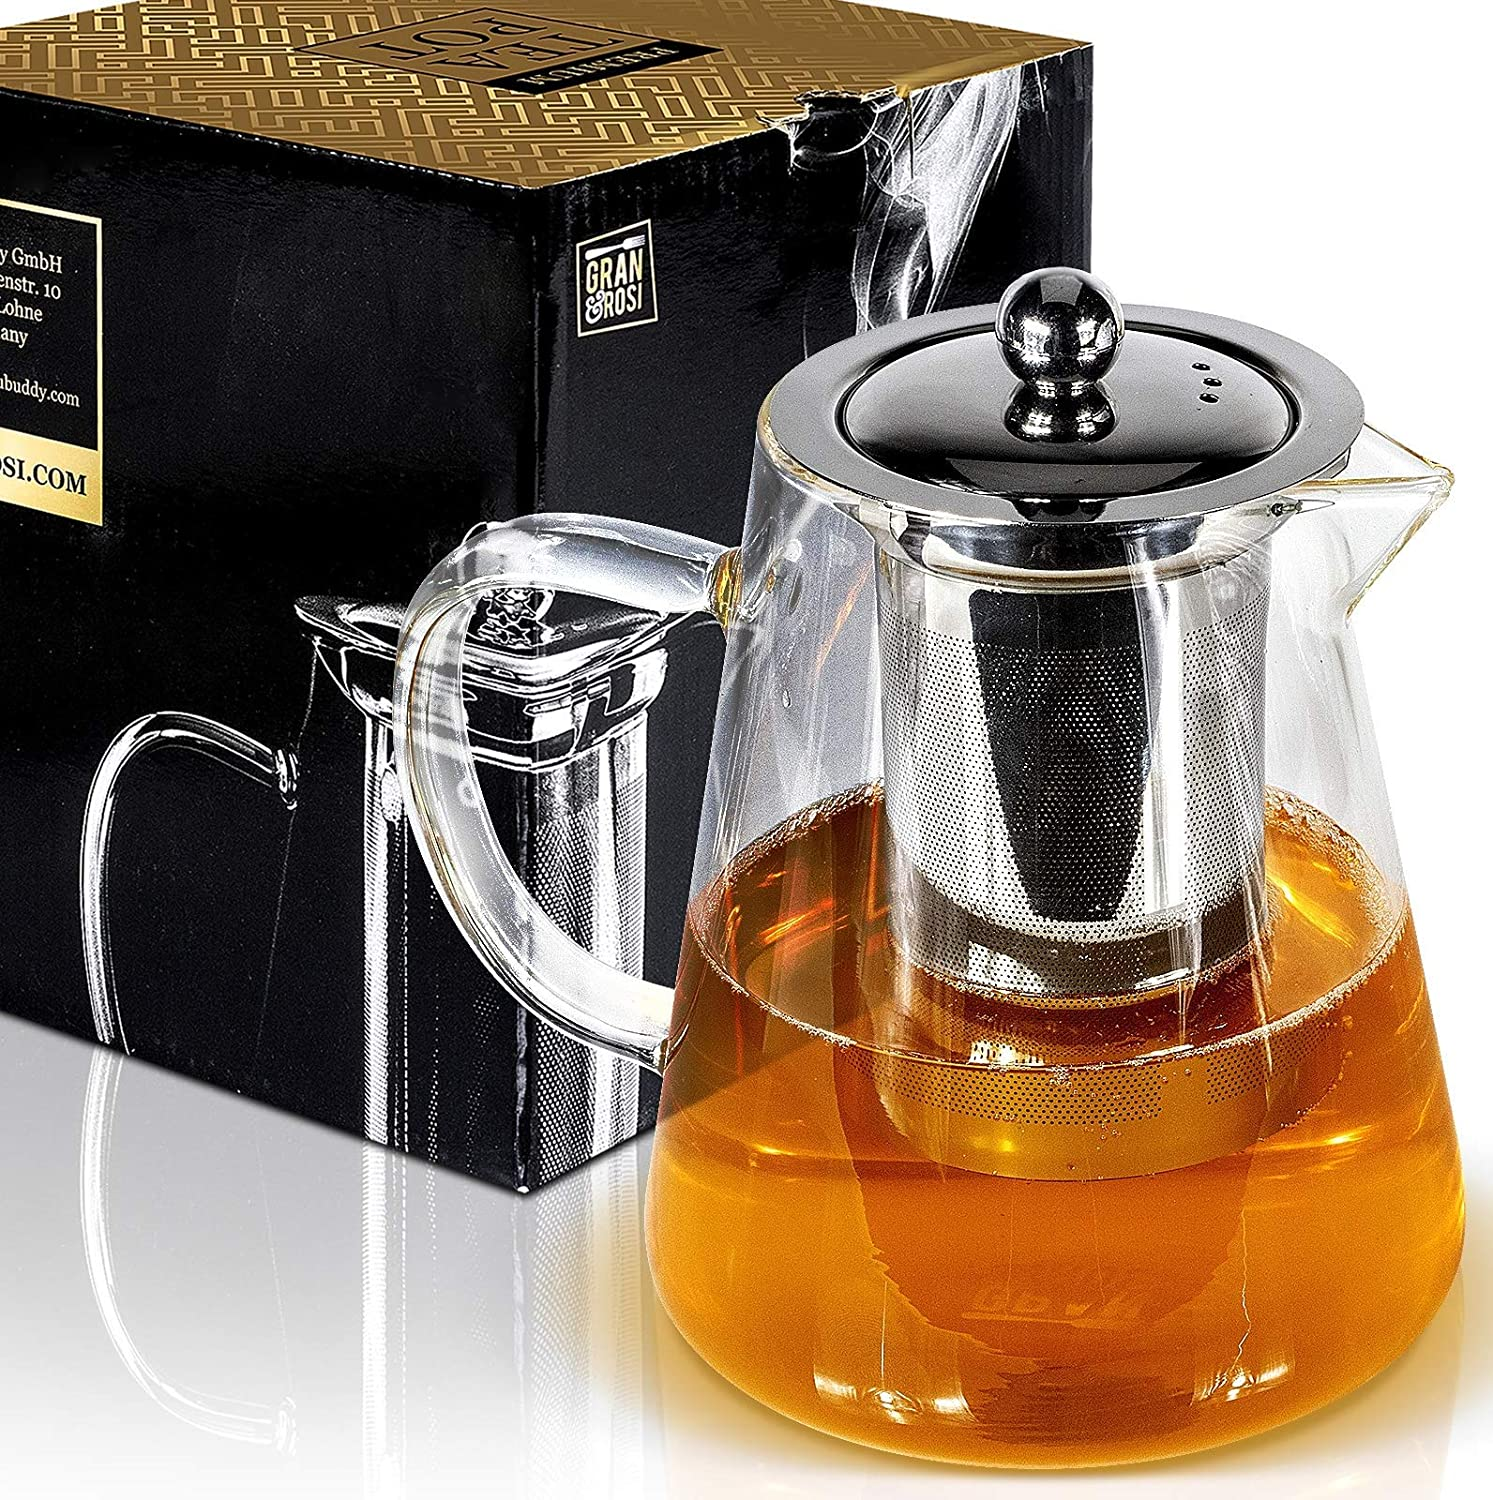 Stunning Glass Tea Pot with Warmer - 3-4 Cup Stainless Steel Tea Infuser with Lid - Stovetop Safe, Heat Resistant Teapot Set with Cover Keeps Tea Hot for Perfect Cup Granrosi